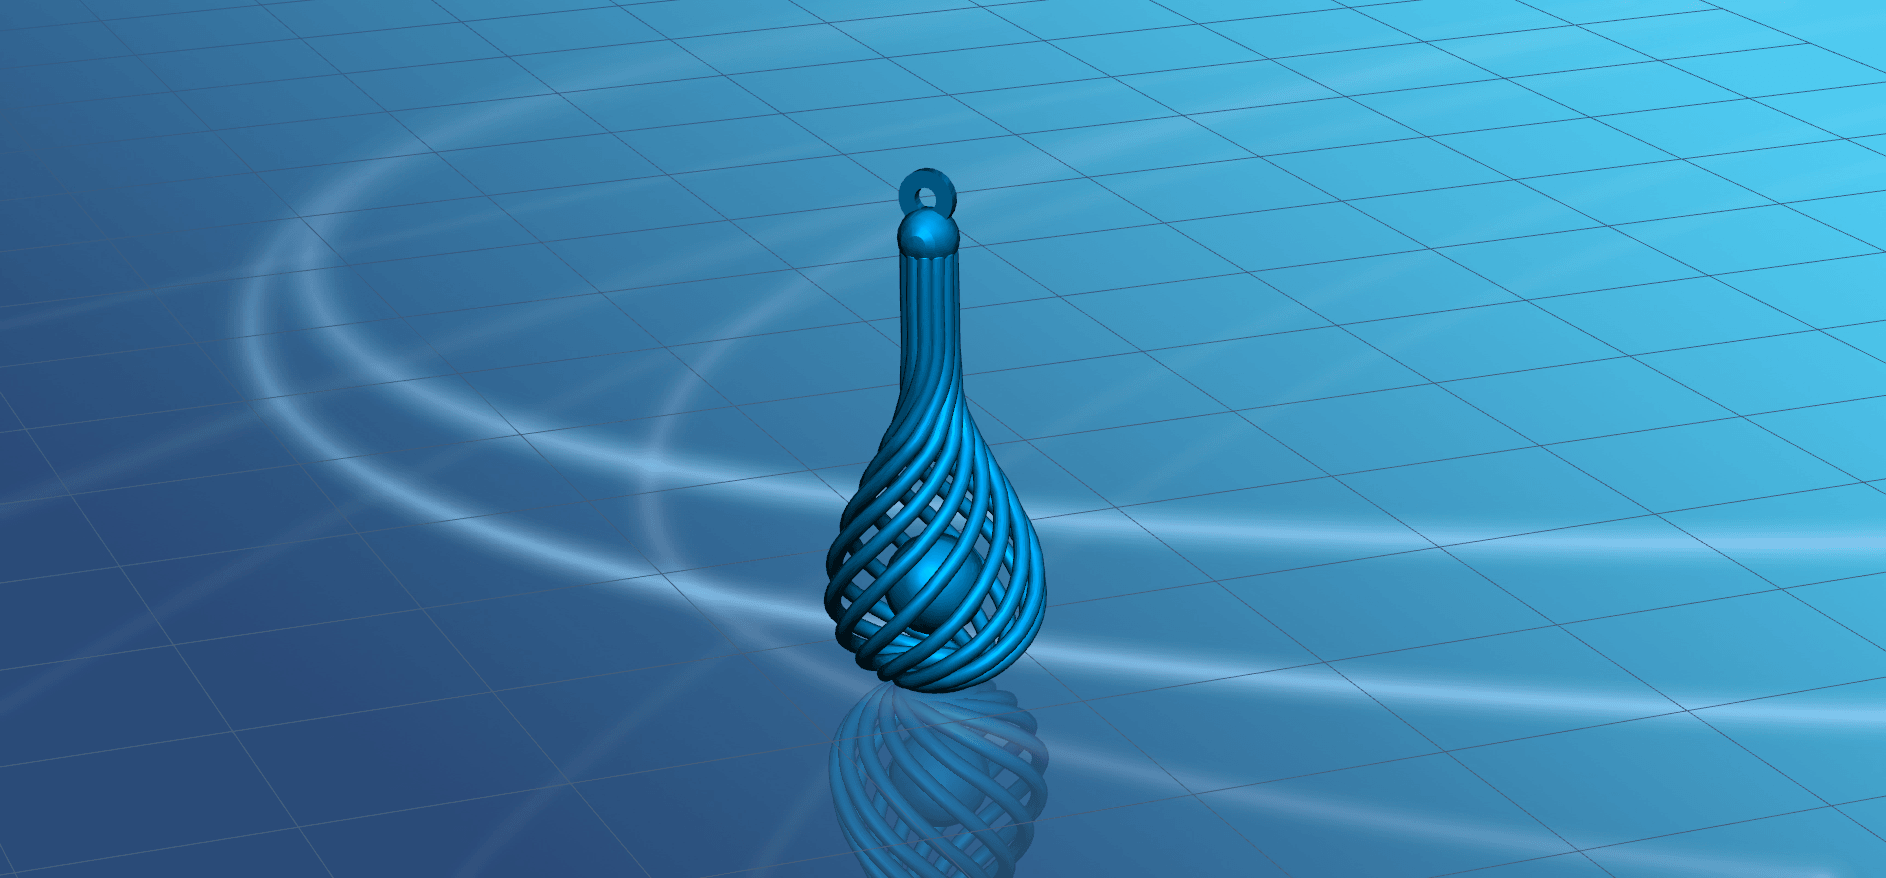 Necklace - Twisted Vase-03.png Download free STL file Necklaces - Twisted Vase • 3D print design, GeorgesNikkei